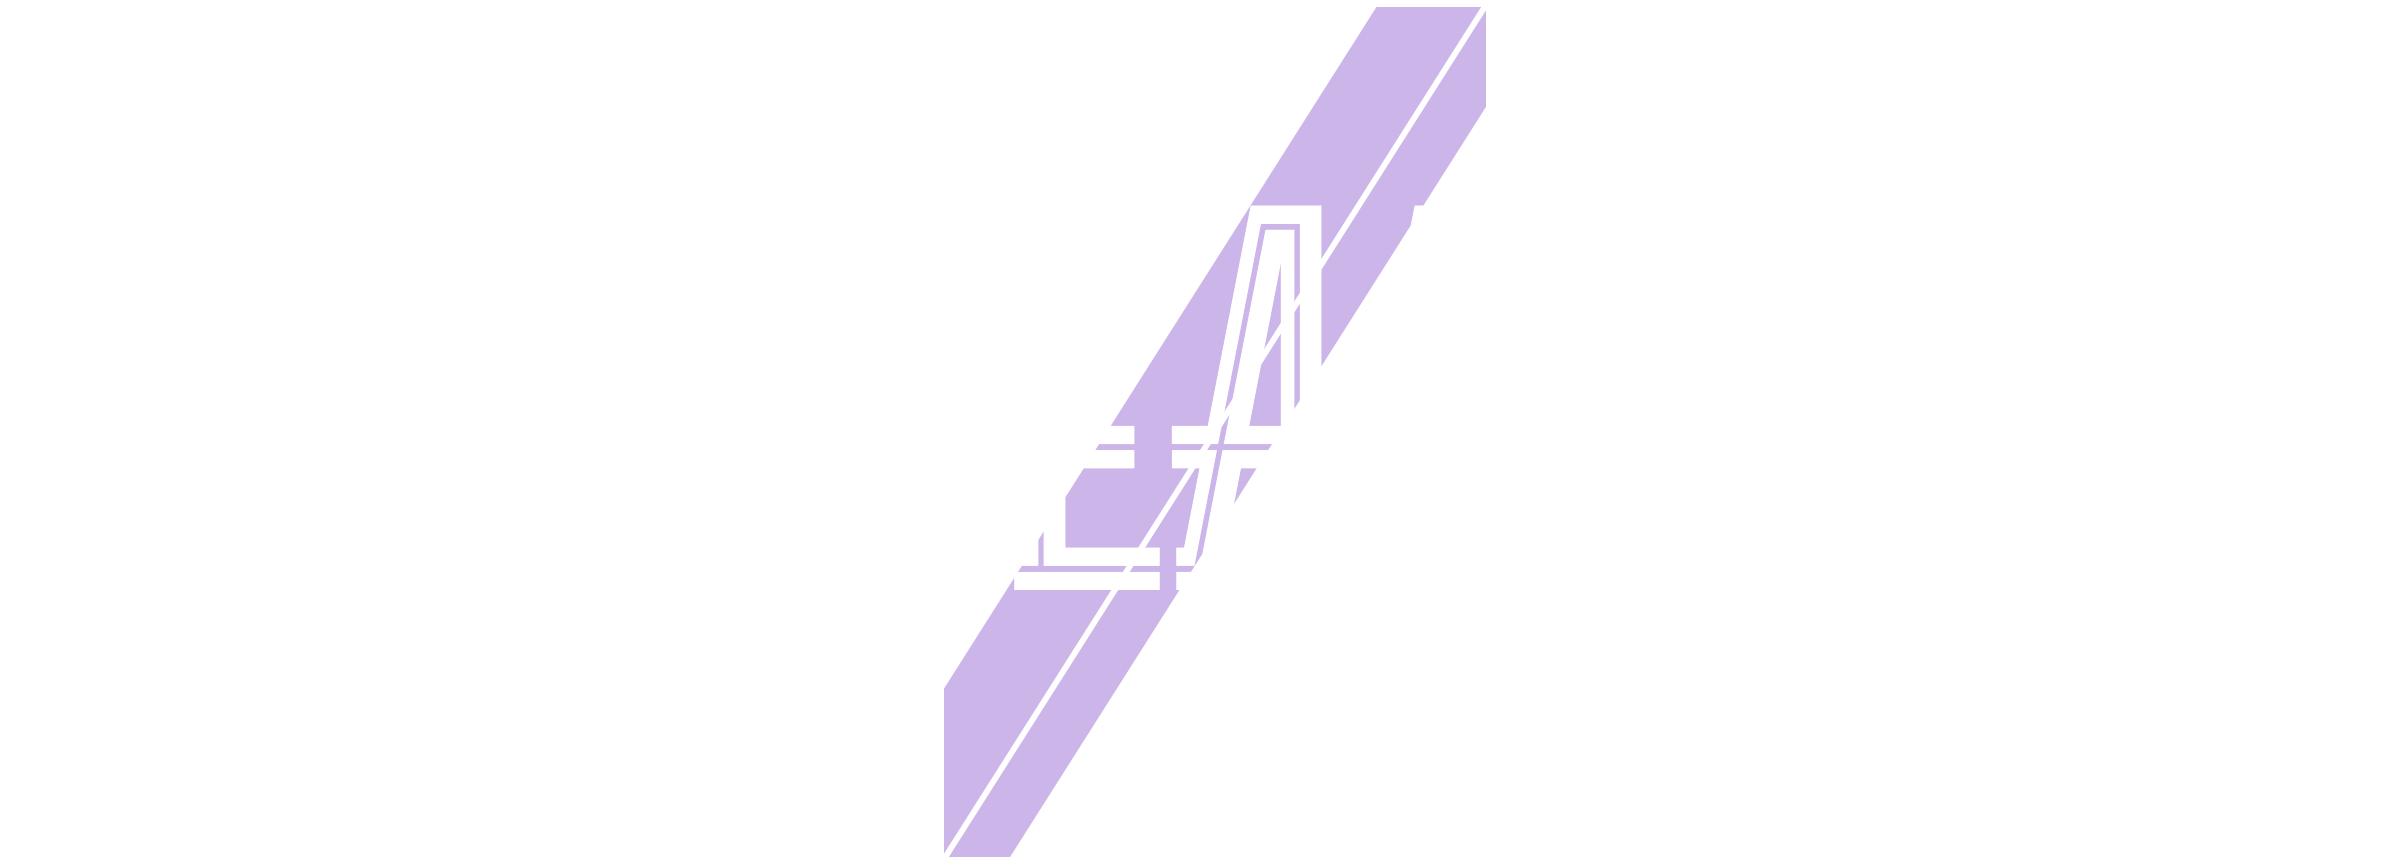 _2019_team_2400px.png